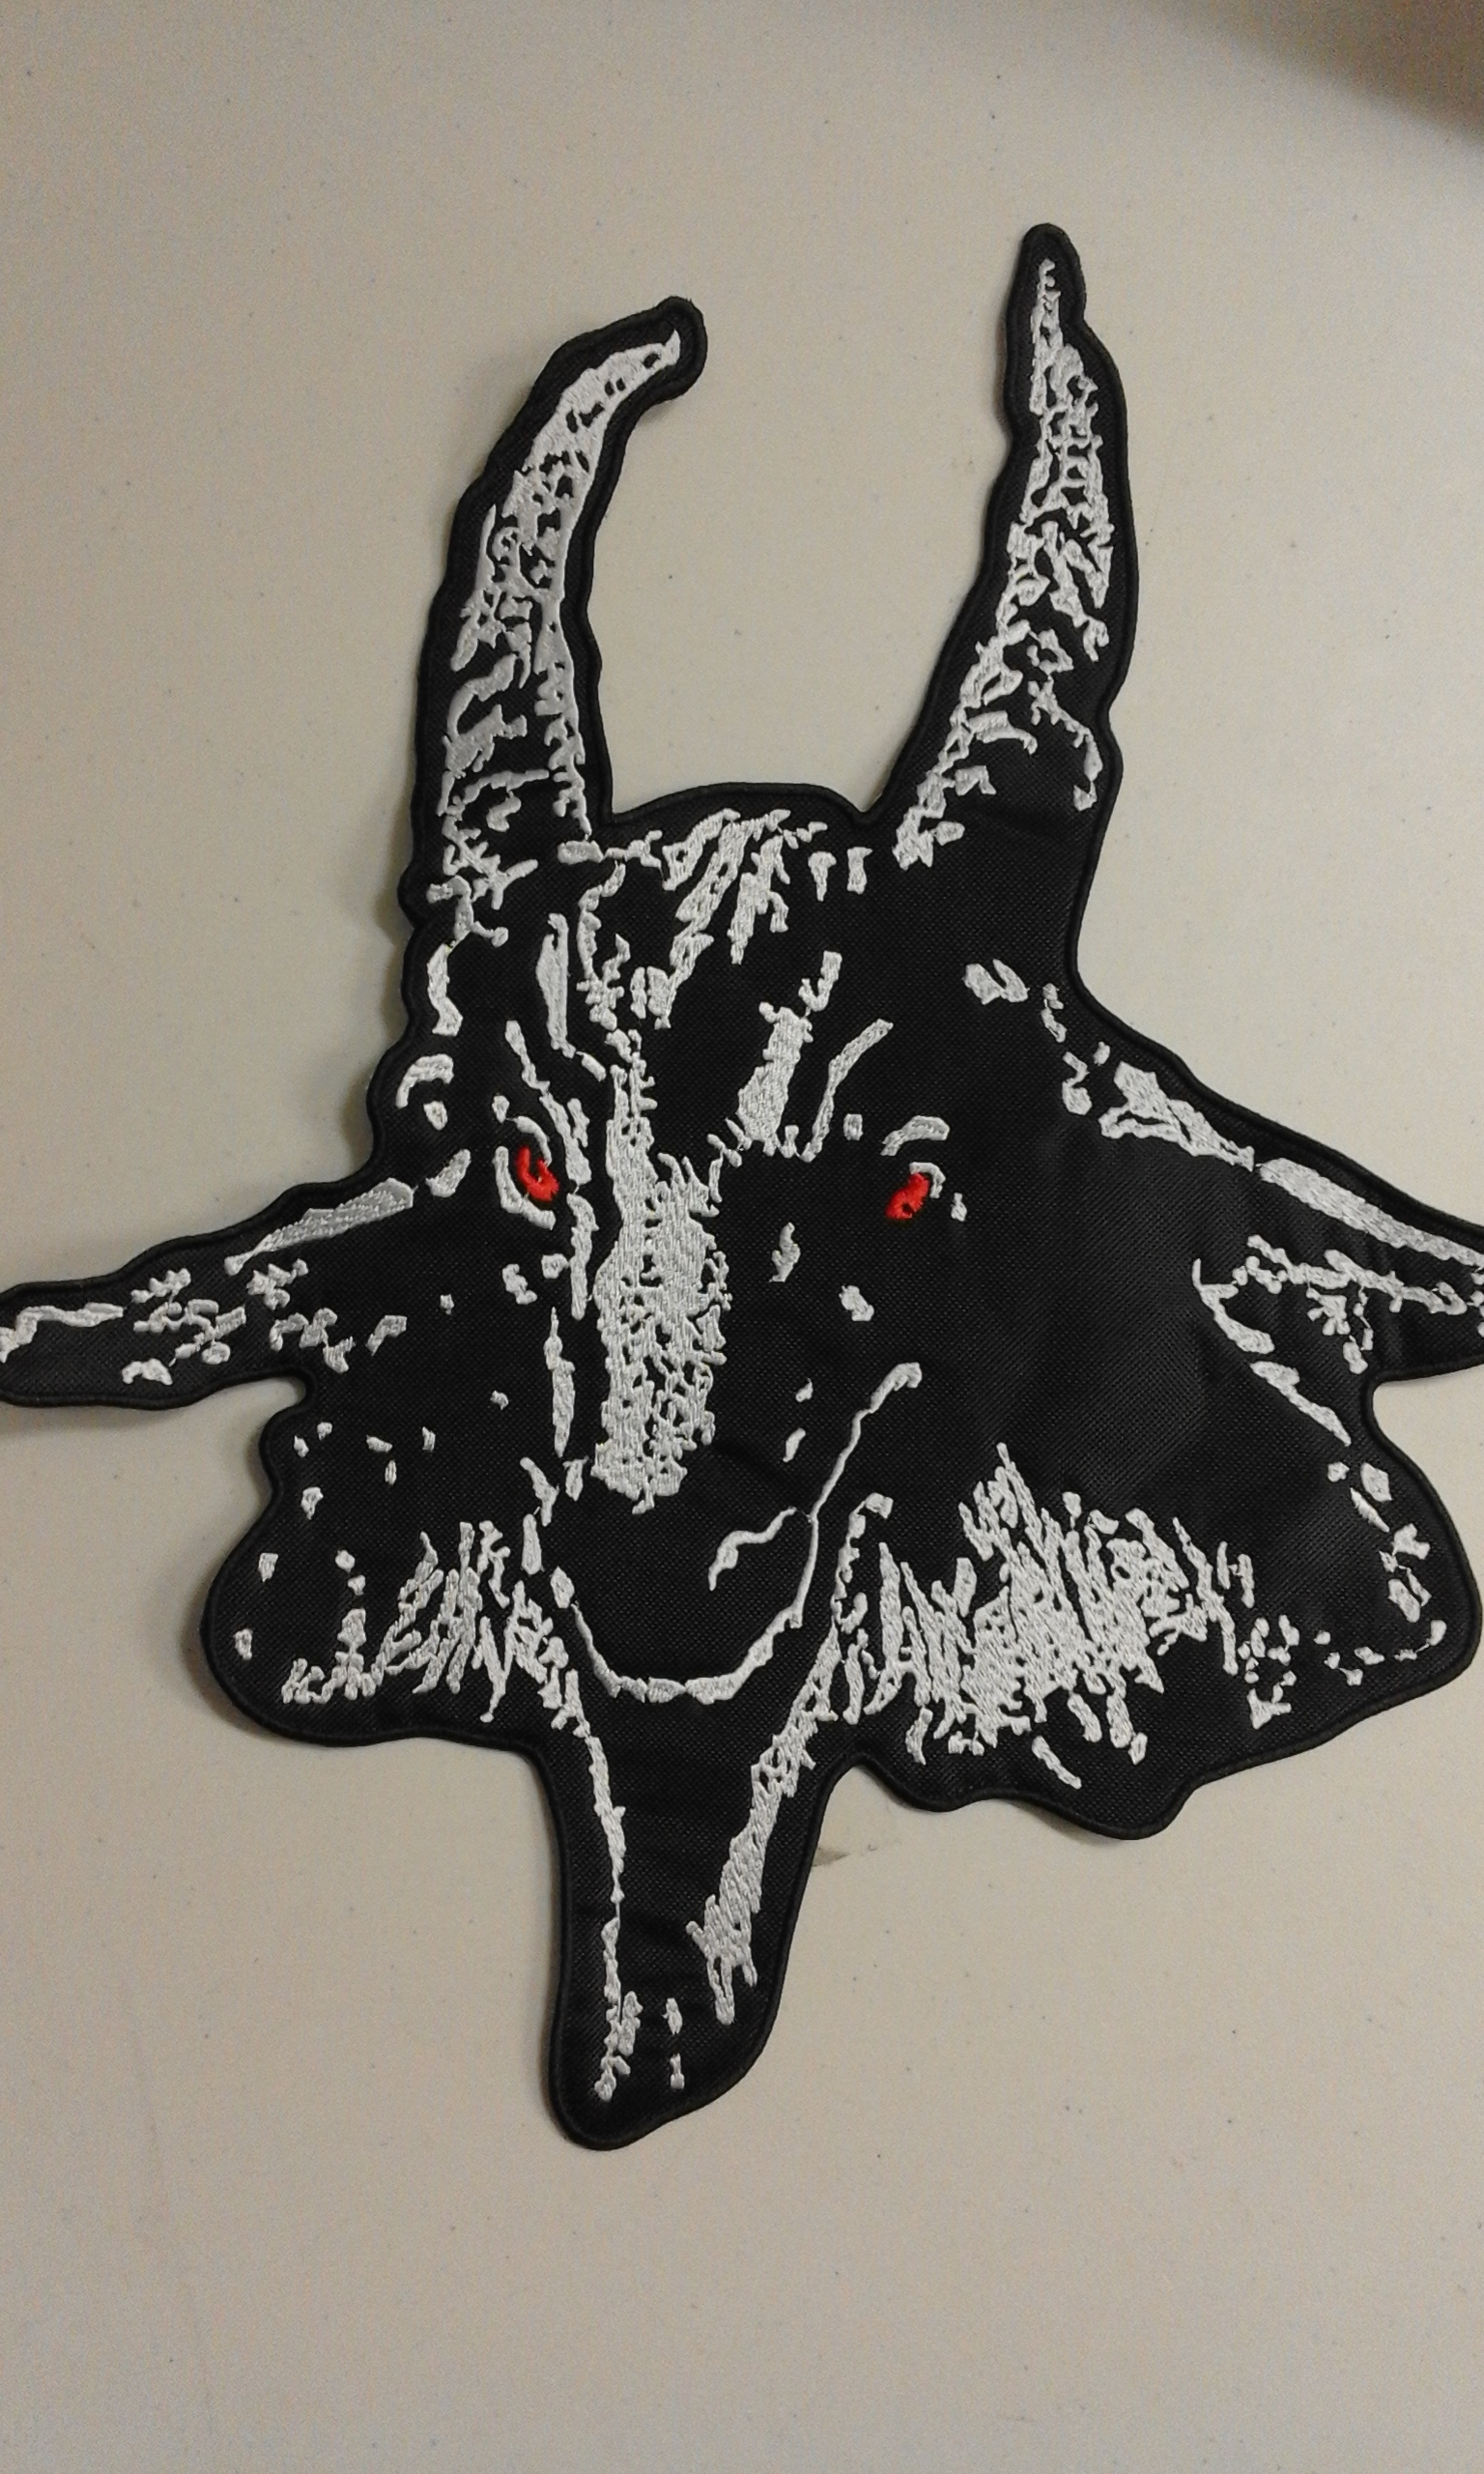 Bathory - Goat   (Backpatch)